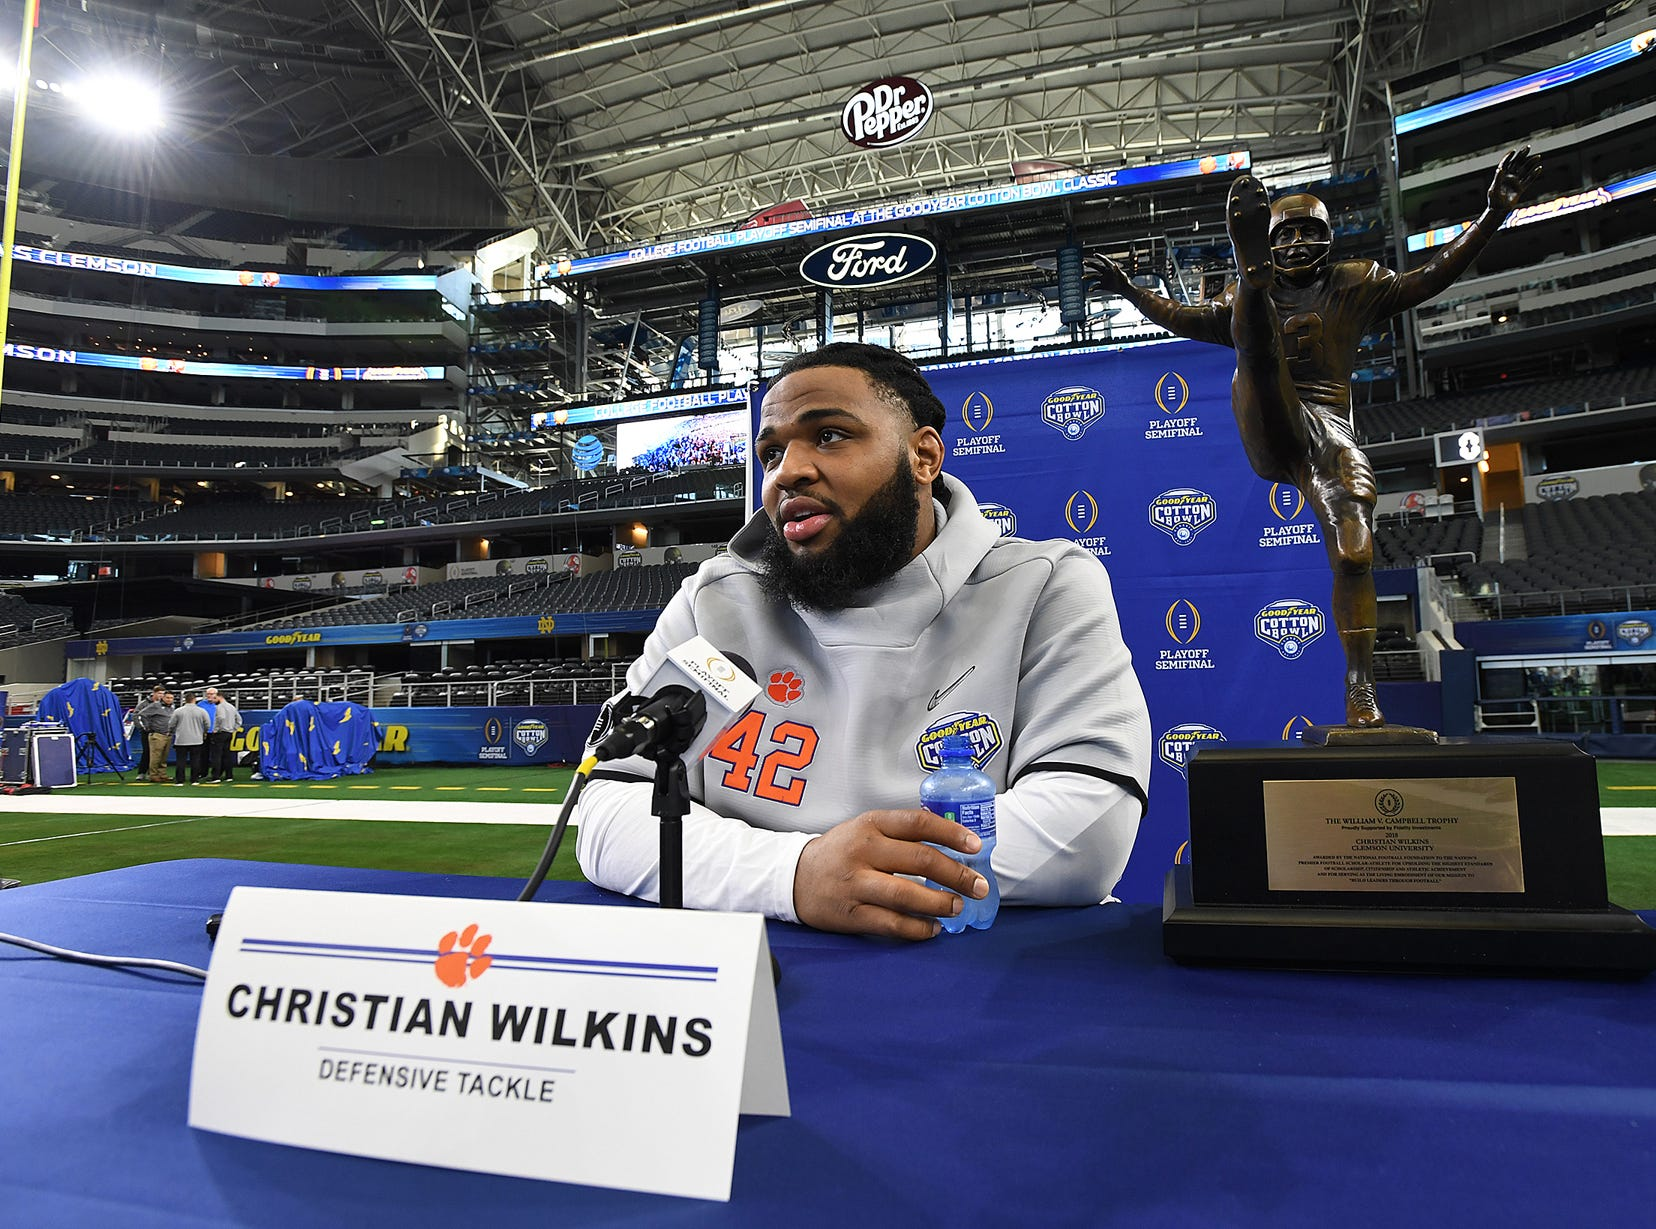 Clemson defensive lineman Christian Wilkins answers questions during the Tigers Cotton Bowl media day at AT&T Stadium in Arlington, TX Thursday, December 27, 2018.